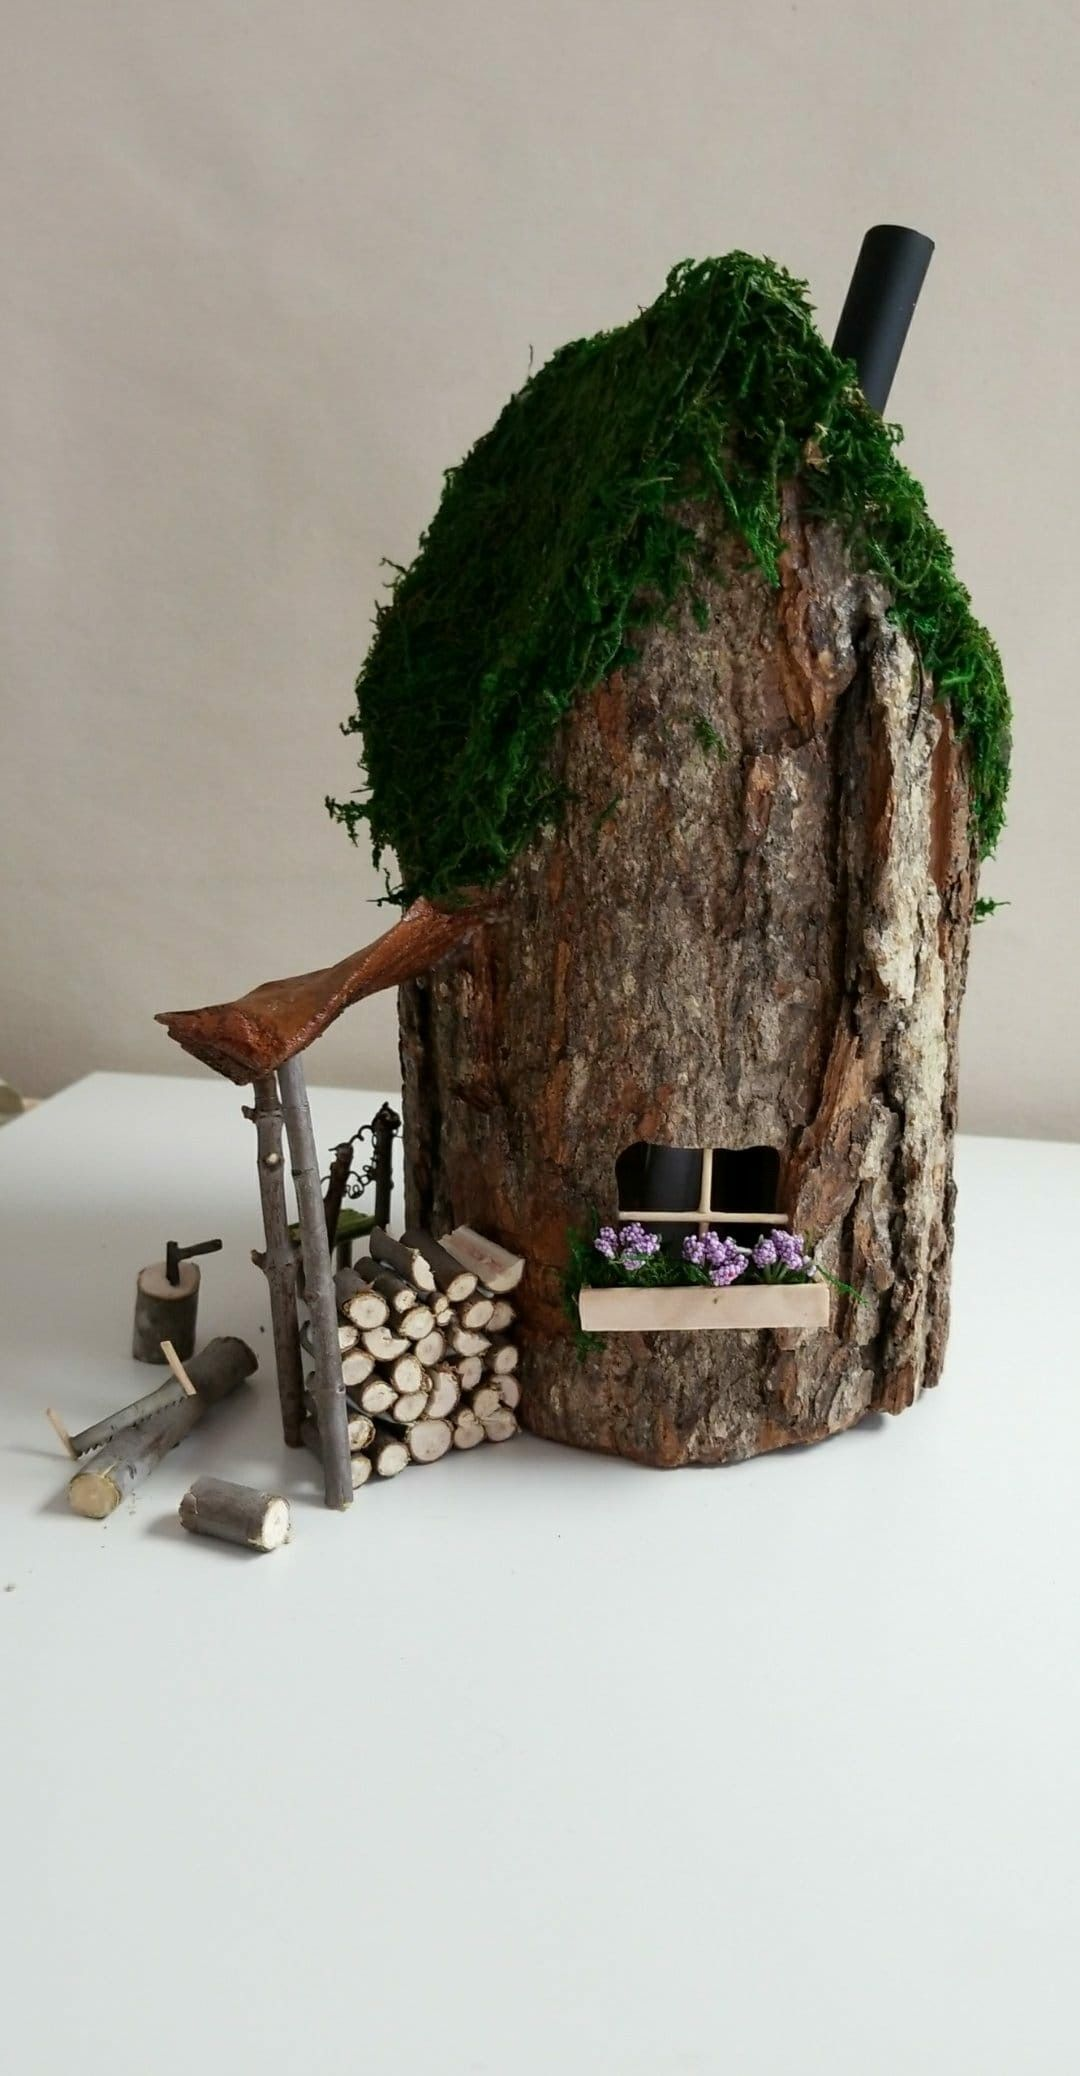 Pin by XRYSA TSOUKALA on fairy house | Pinterest | Fairy, Fairy ...